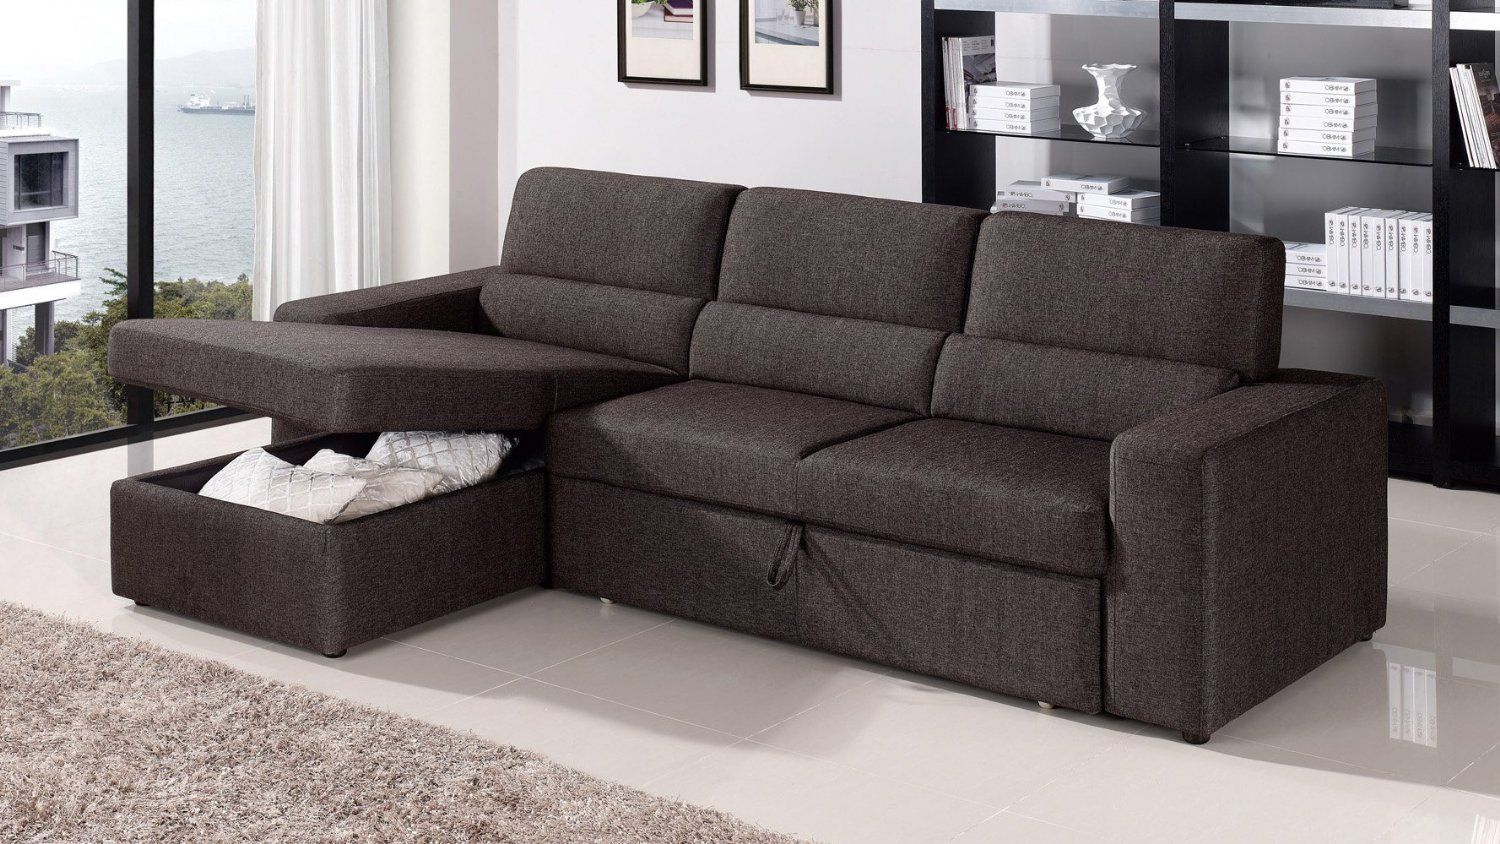 Sectional sleeper sofa the ideal choice for trendy homes sofas